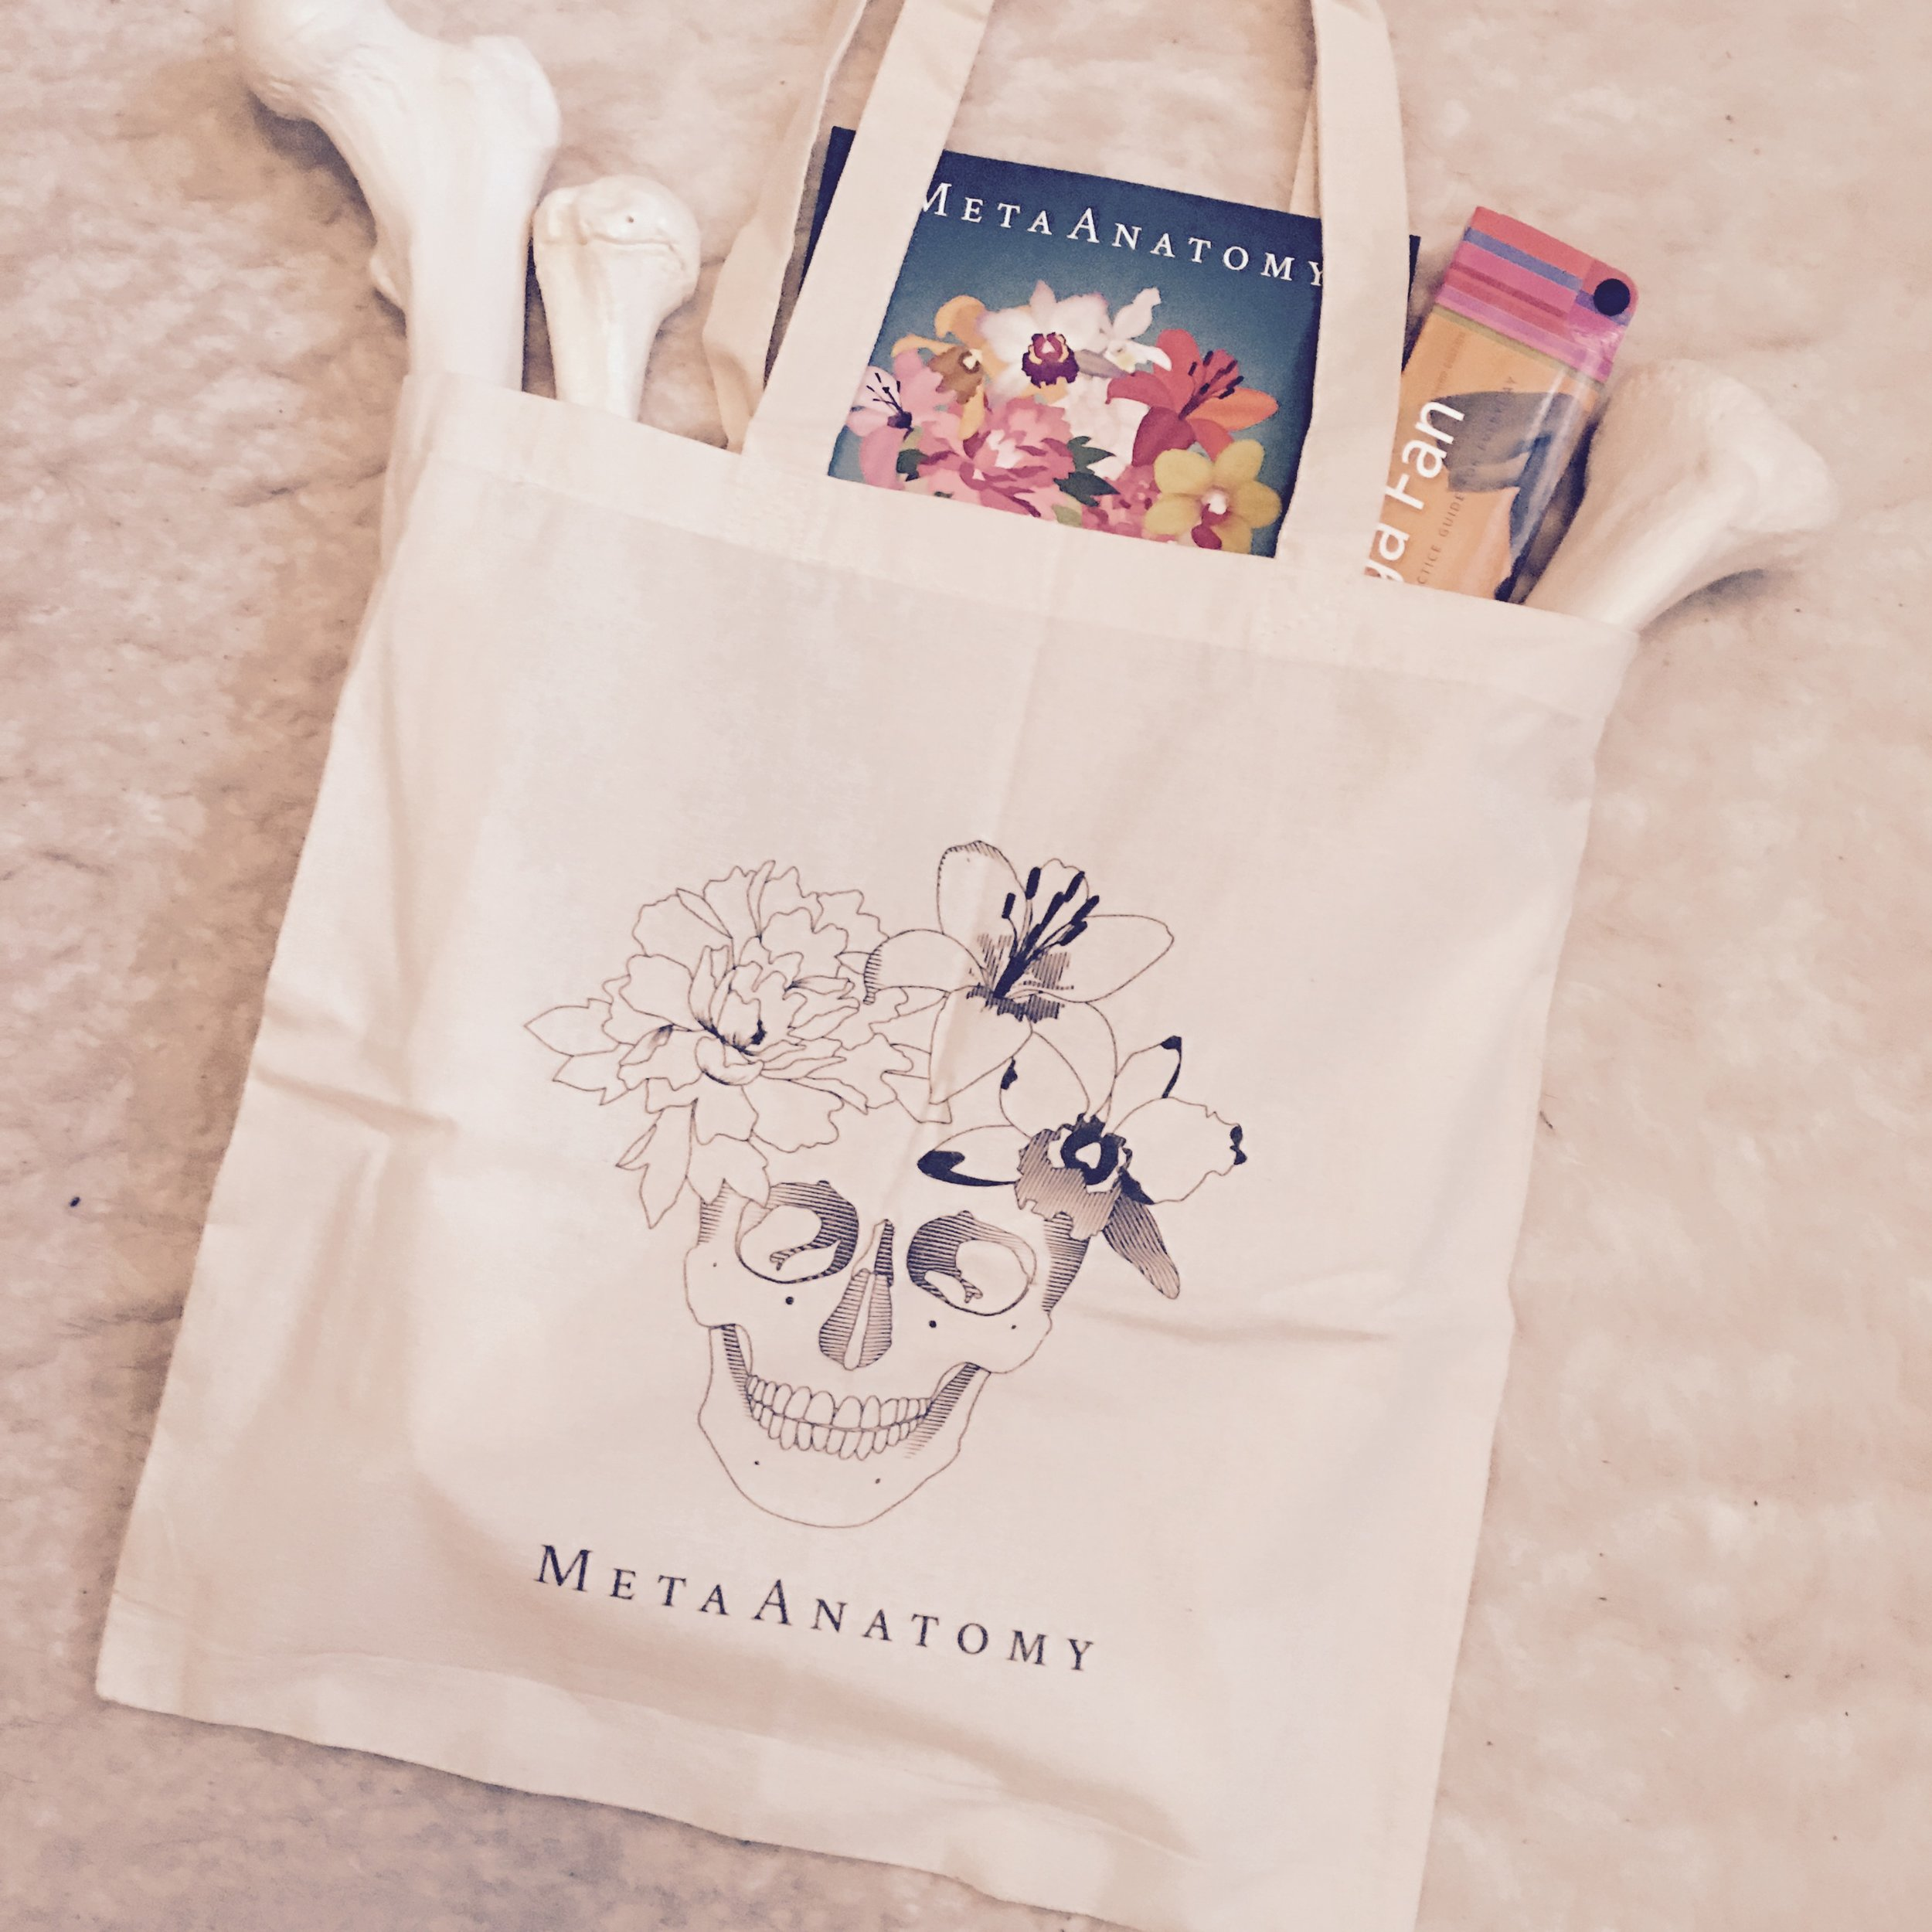 MetaAnatomy Tote Bag   $25  Shipping to US addresses only please   click here to purchase